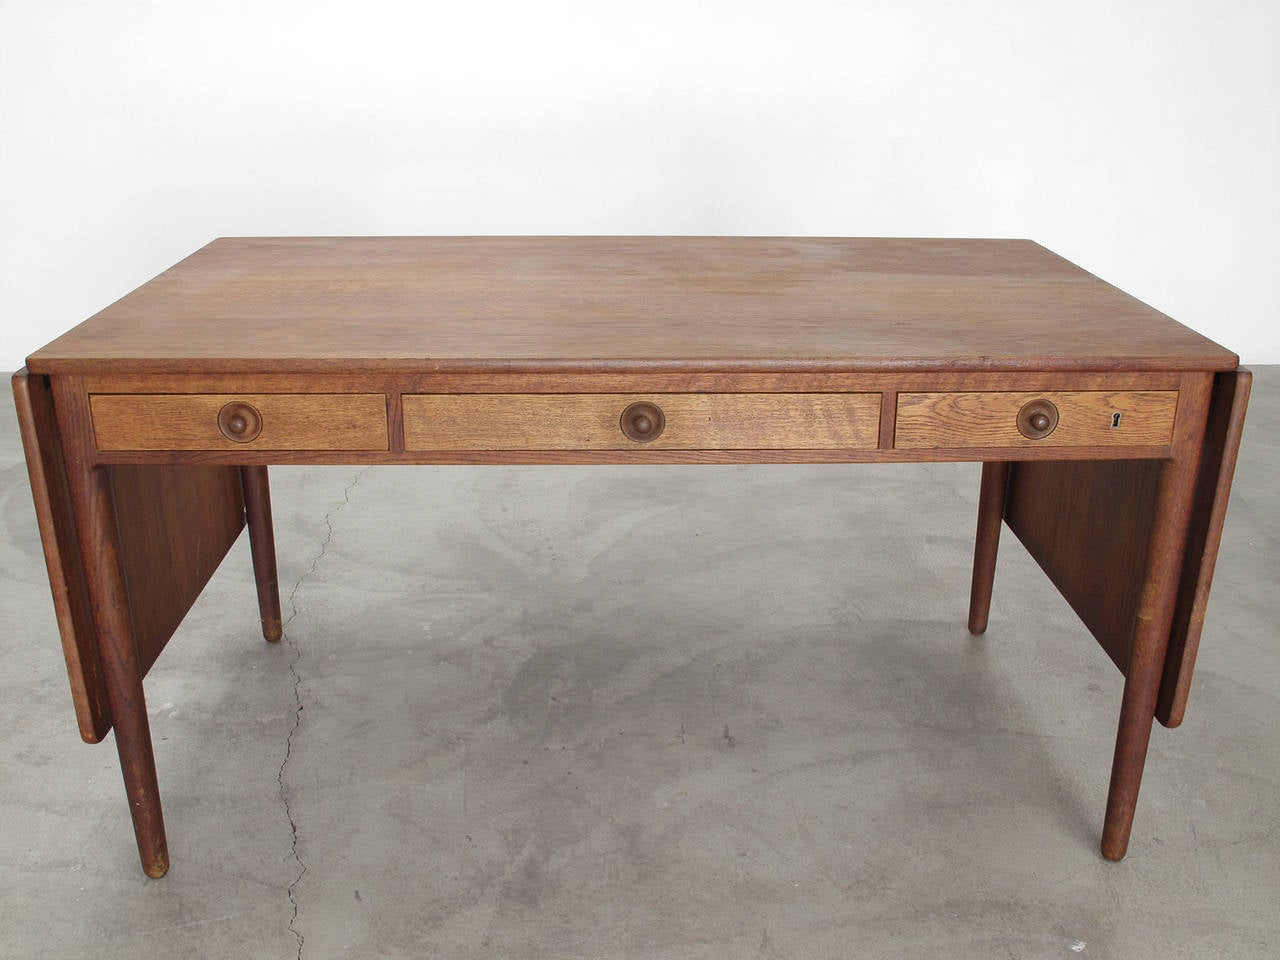 #8C613F This Solid Wood Drop Leaf Desk By Hans J. Wegner Is No Longer  with 1280x960 px of Highly Rated Table Desk Wood 9601280 picture/photo @ avoidforclosure.info